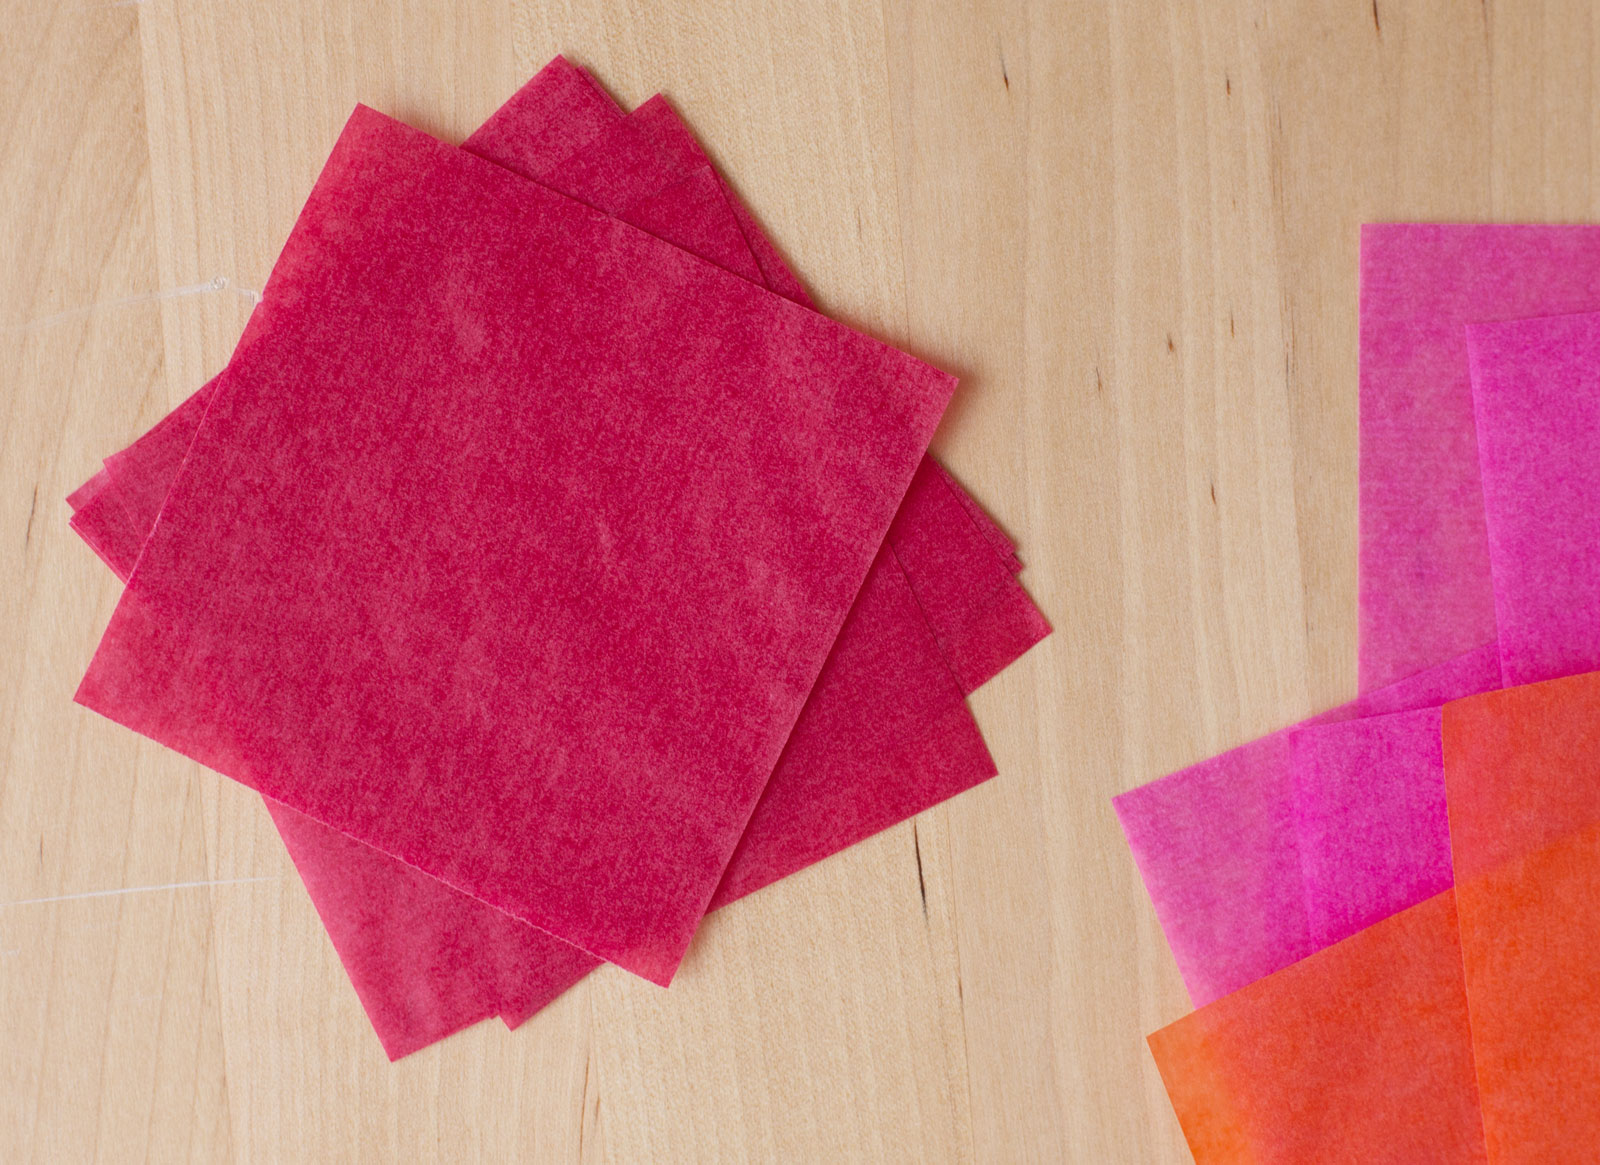 Brighten Winter Windows By Crafting Colorful Paper Stars